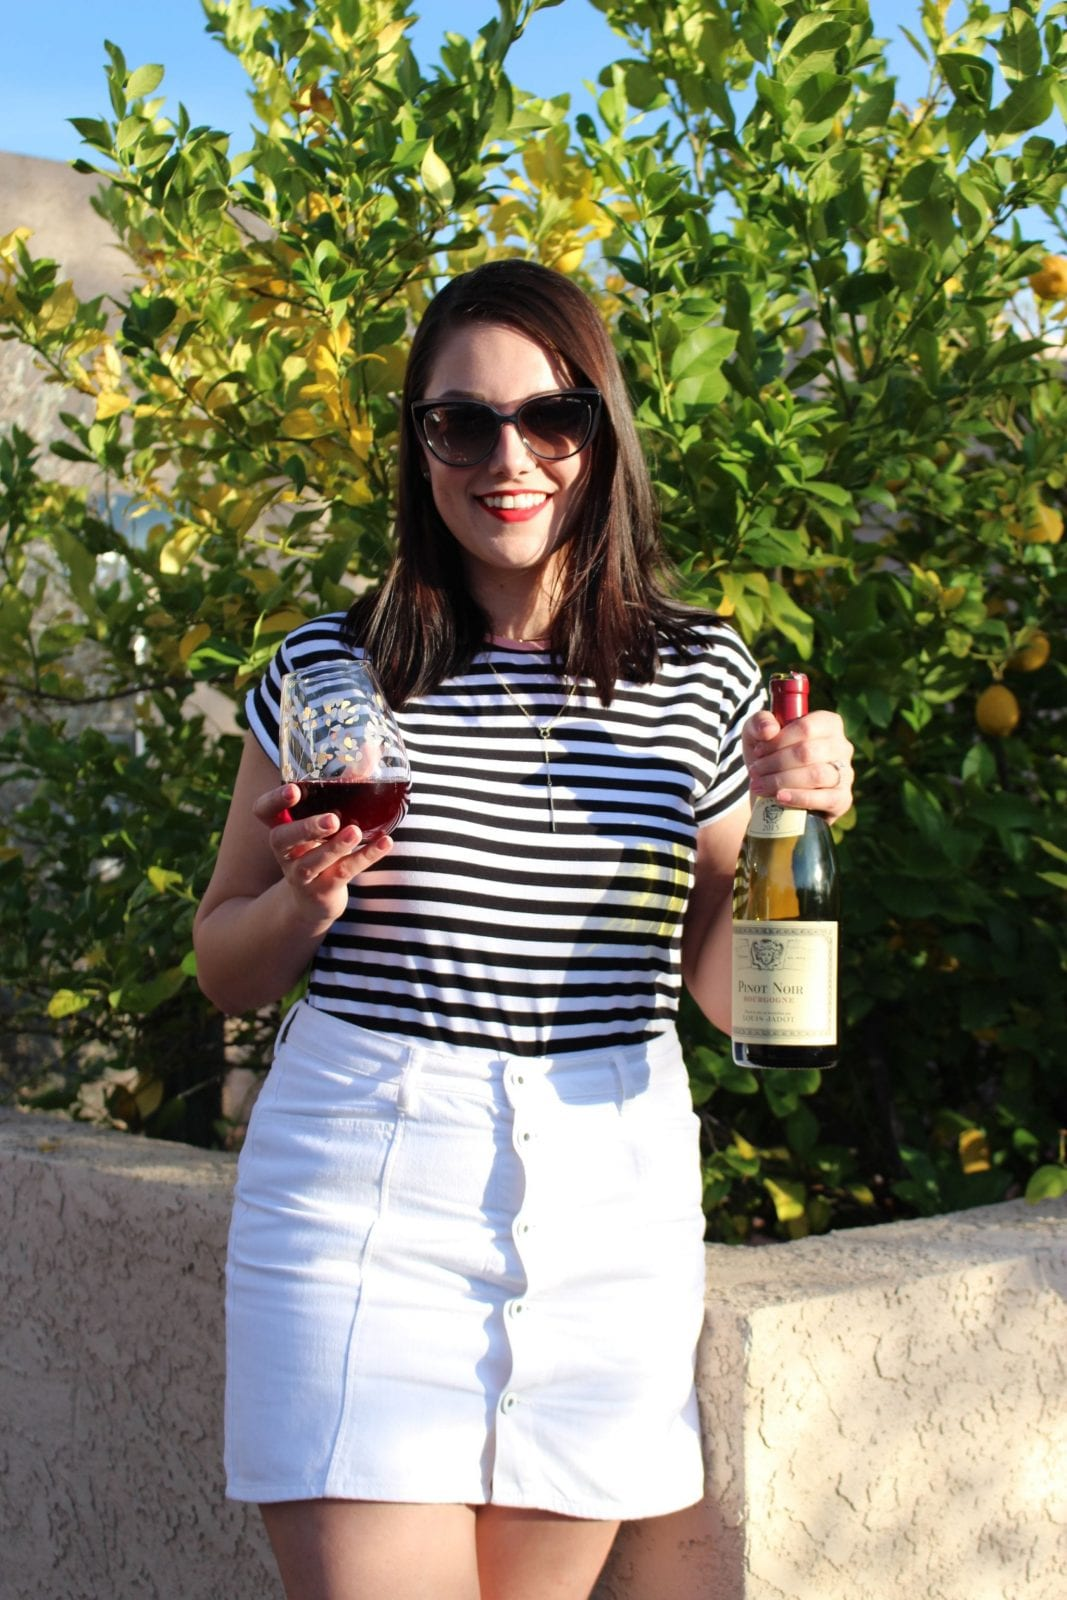 This is a close up shot of me holding a bottle of Louis Jadot, and a glass of wine in my other hand.